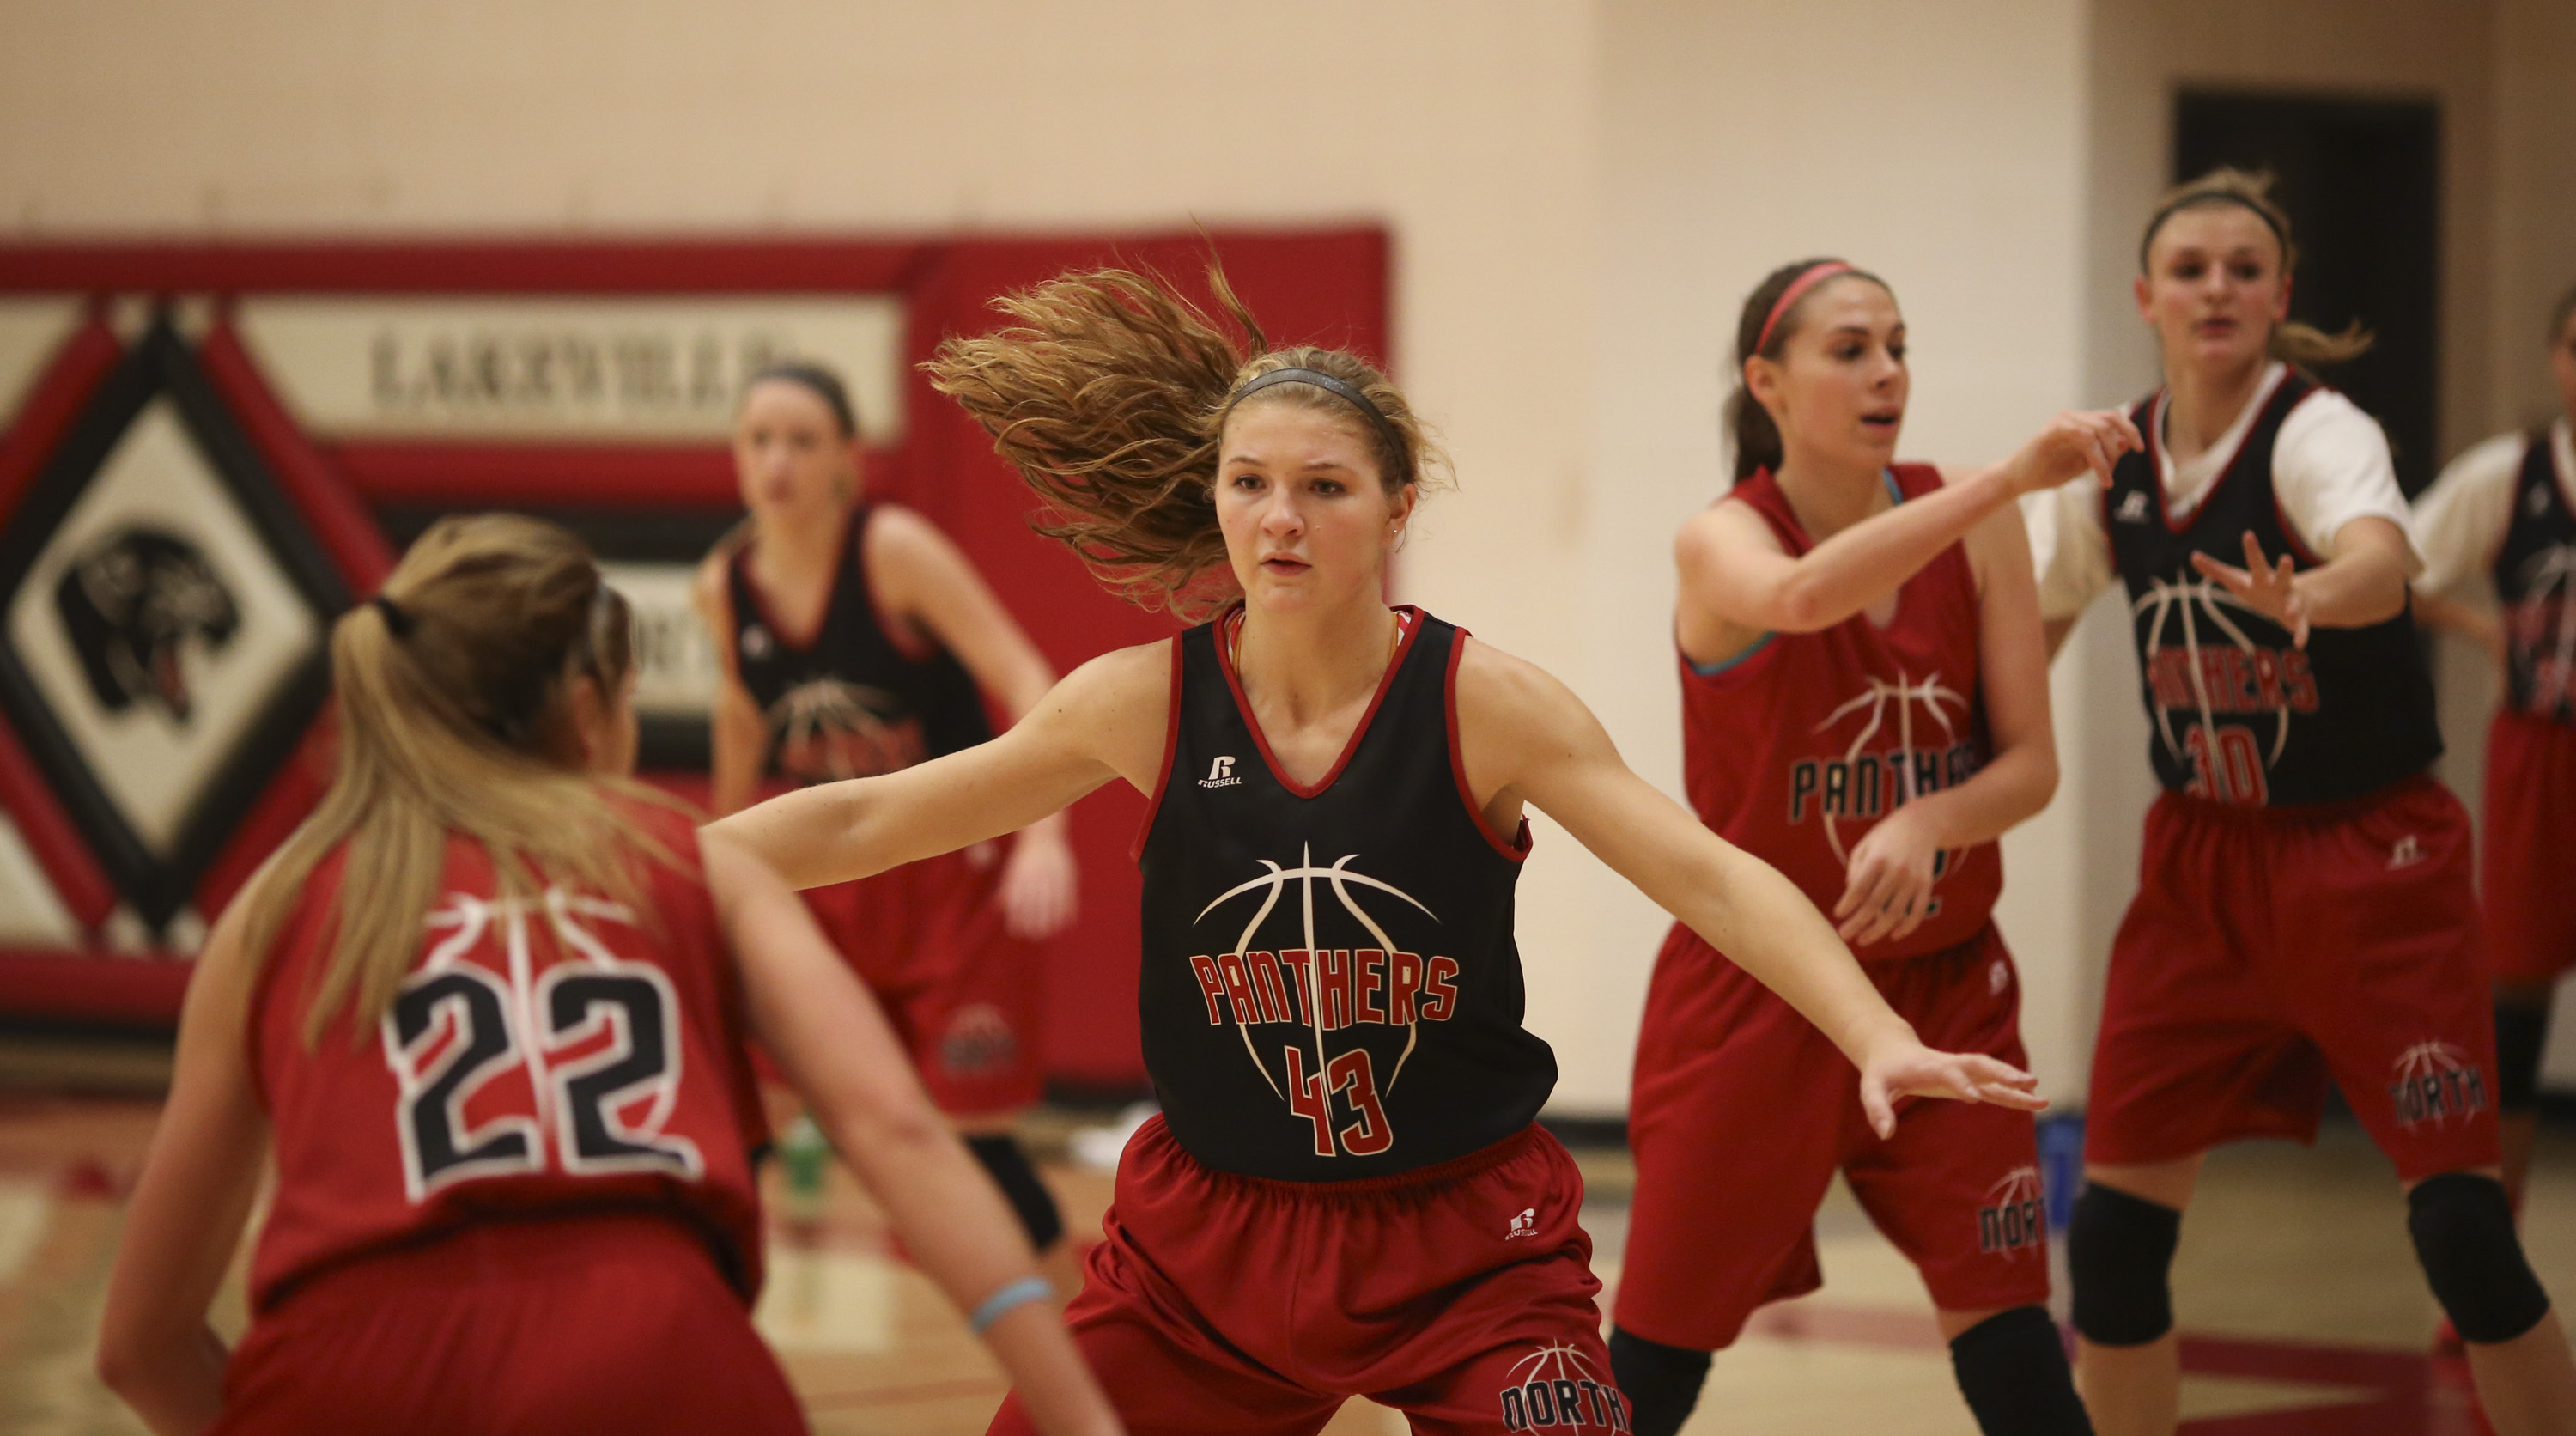 Dec. 22, 2014 - Lakeville, MN, U.S. - MacKenzie Denk (43) during practice Monday afternoon at Lakeville North High School.    ]  JEFF WHEELER •     The Lakeville North girl's basketball team practiced Monday afternoon, December 22, 2014 at the high school. (Credit Image: © Jeff Wheeler/Minneapolis Star Tribune/ZUMA Wire)